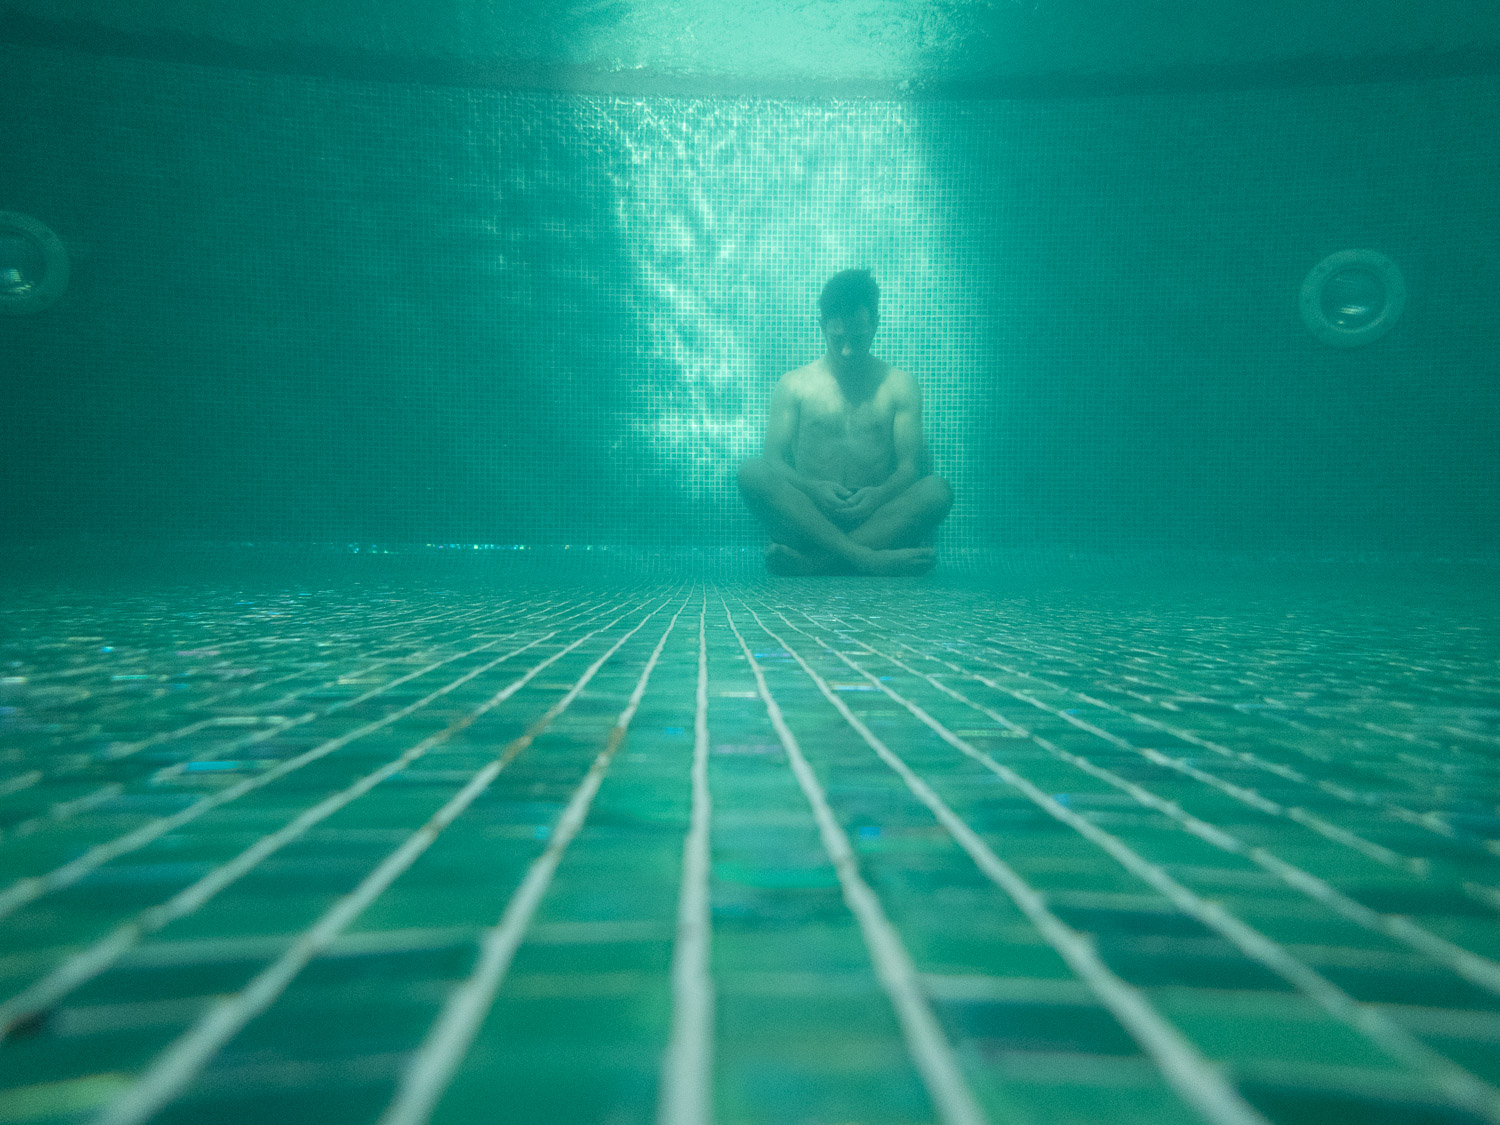 Underwater-Pool-Test-Reject-Photography-Turquoise-RAW-9.jpg